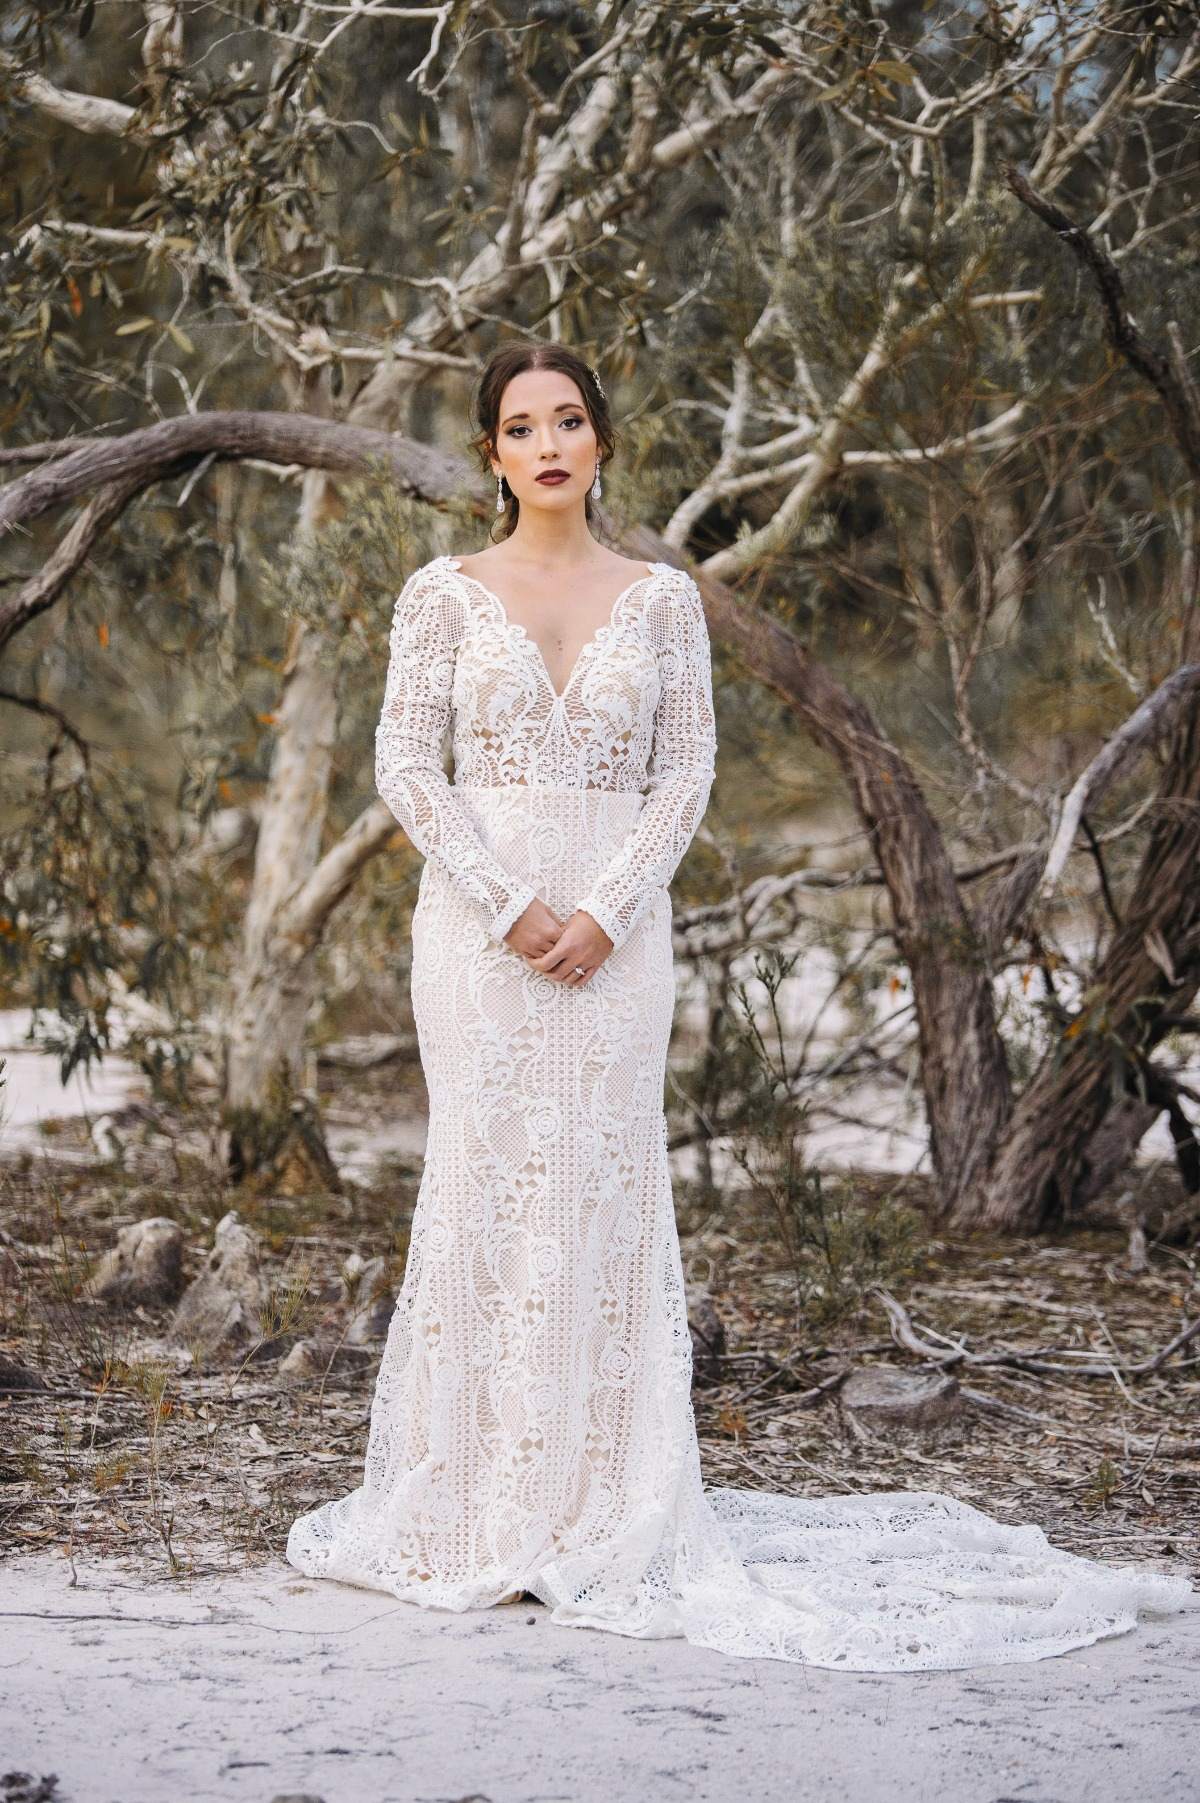 Delilah gown from Goddess by Nature